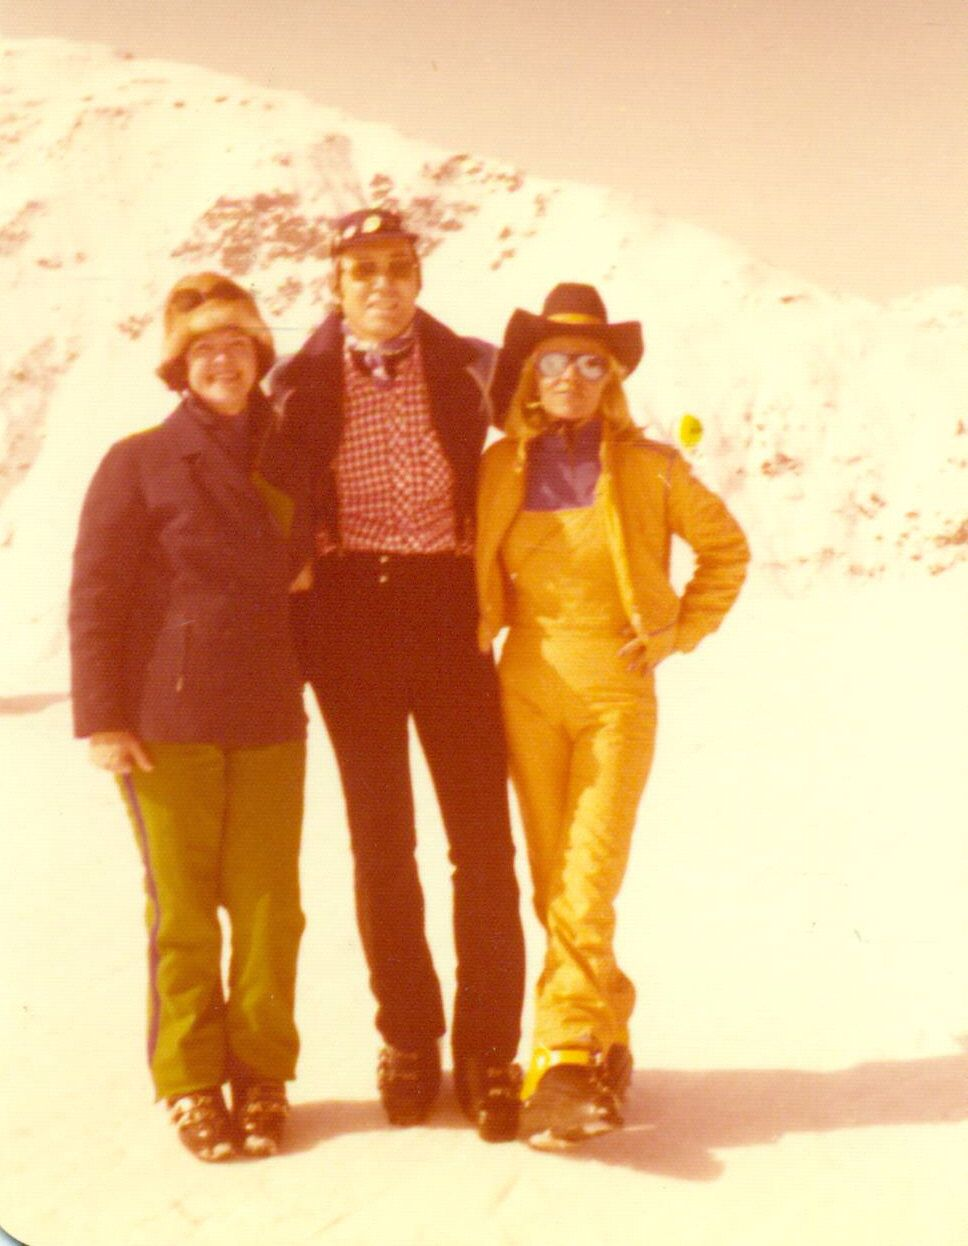 1970s Ski Fashions Woman Yellow Snow Suit Cowboy Hat Man Red Plaid ...